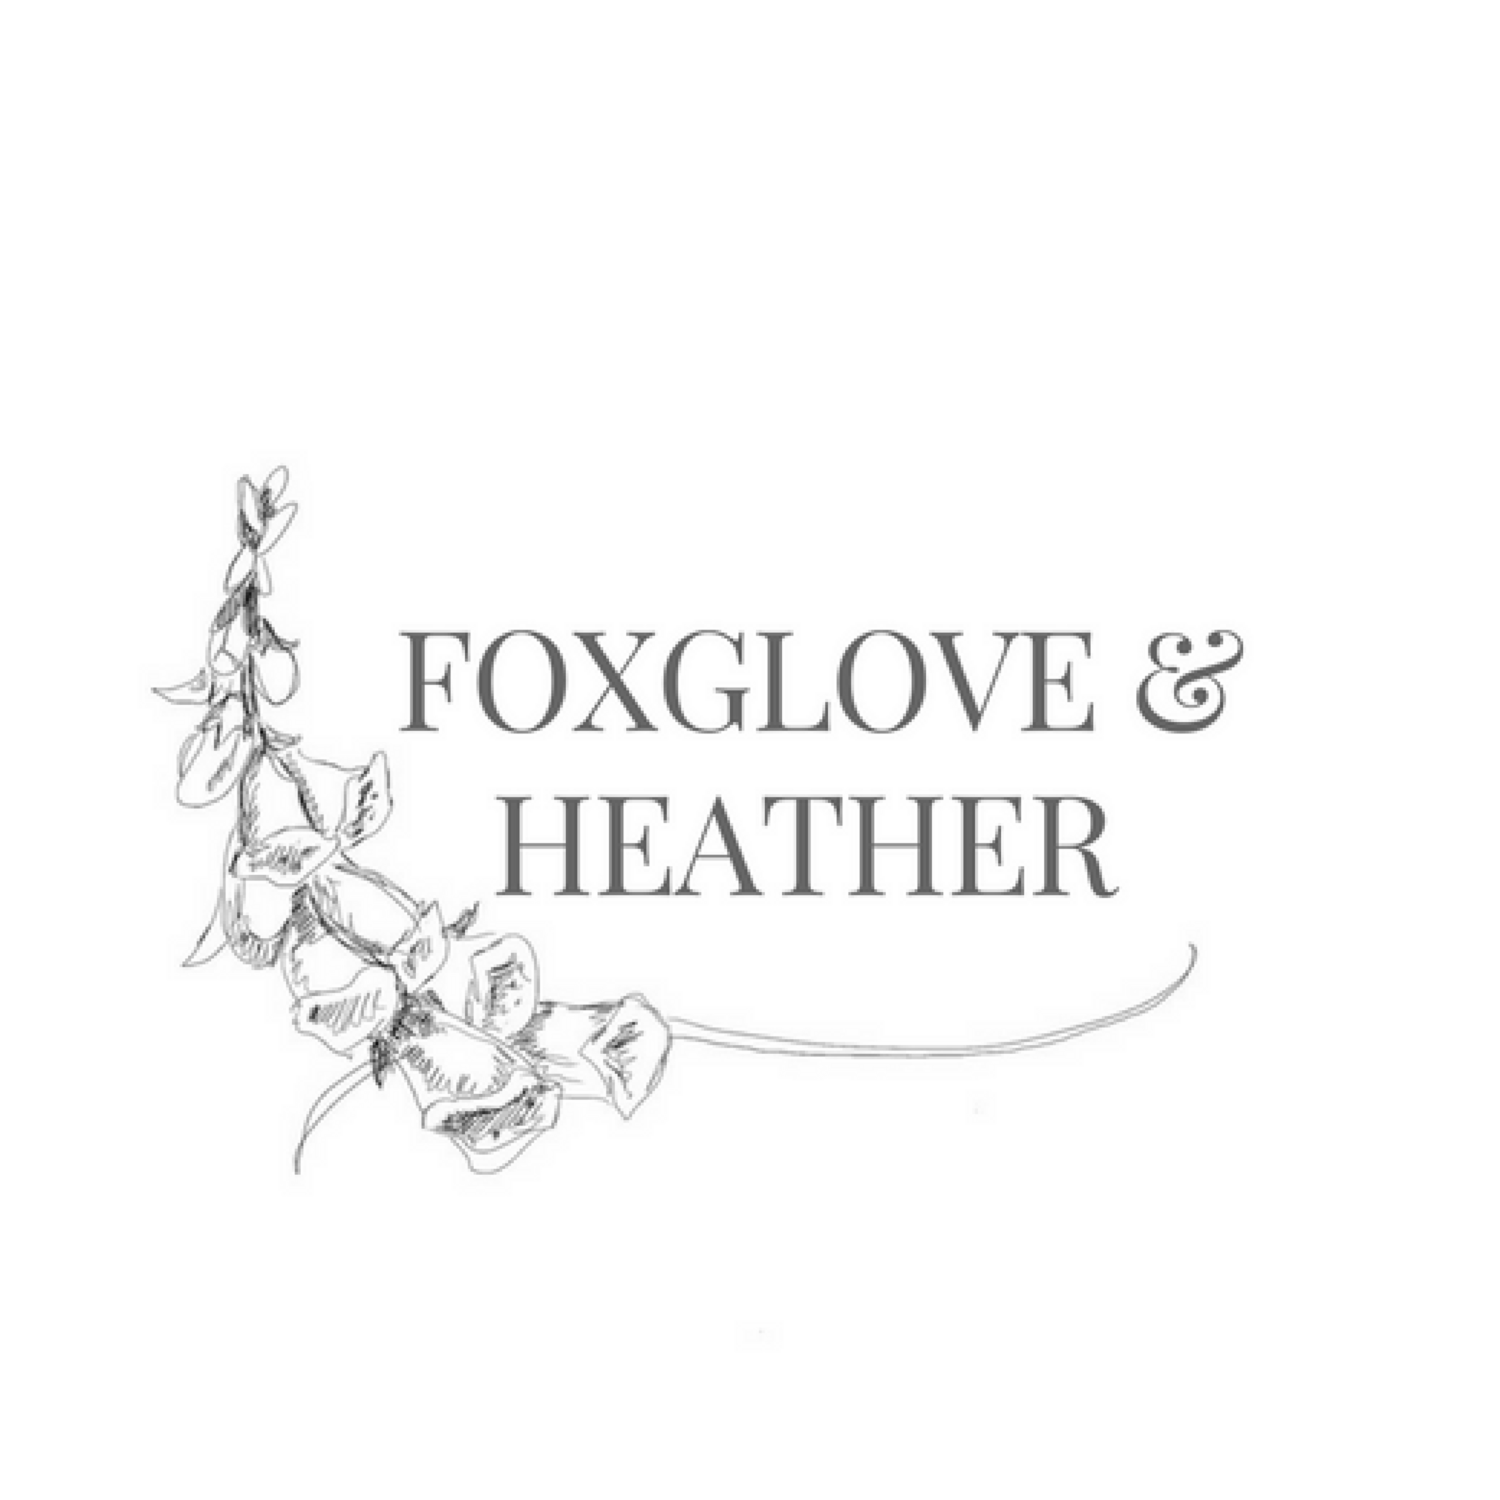 Foxglove & Heather